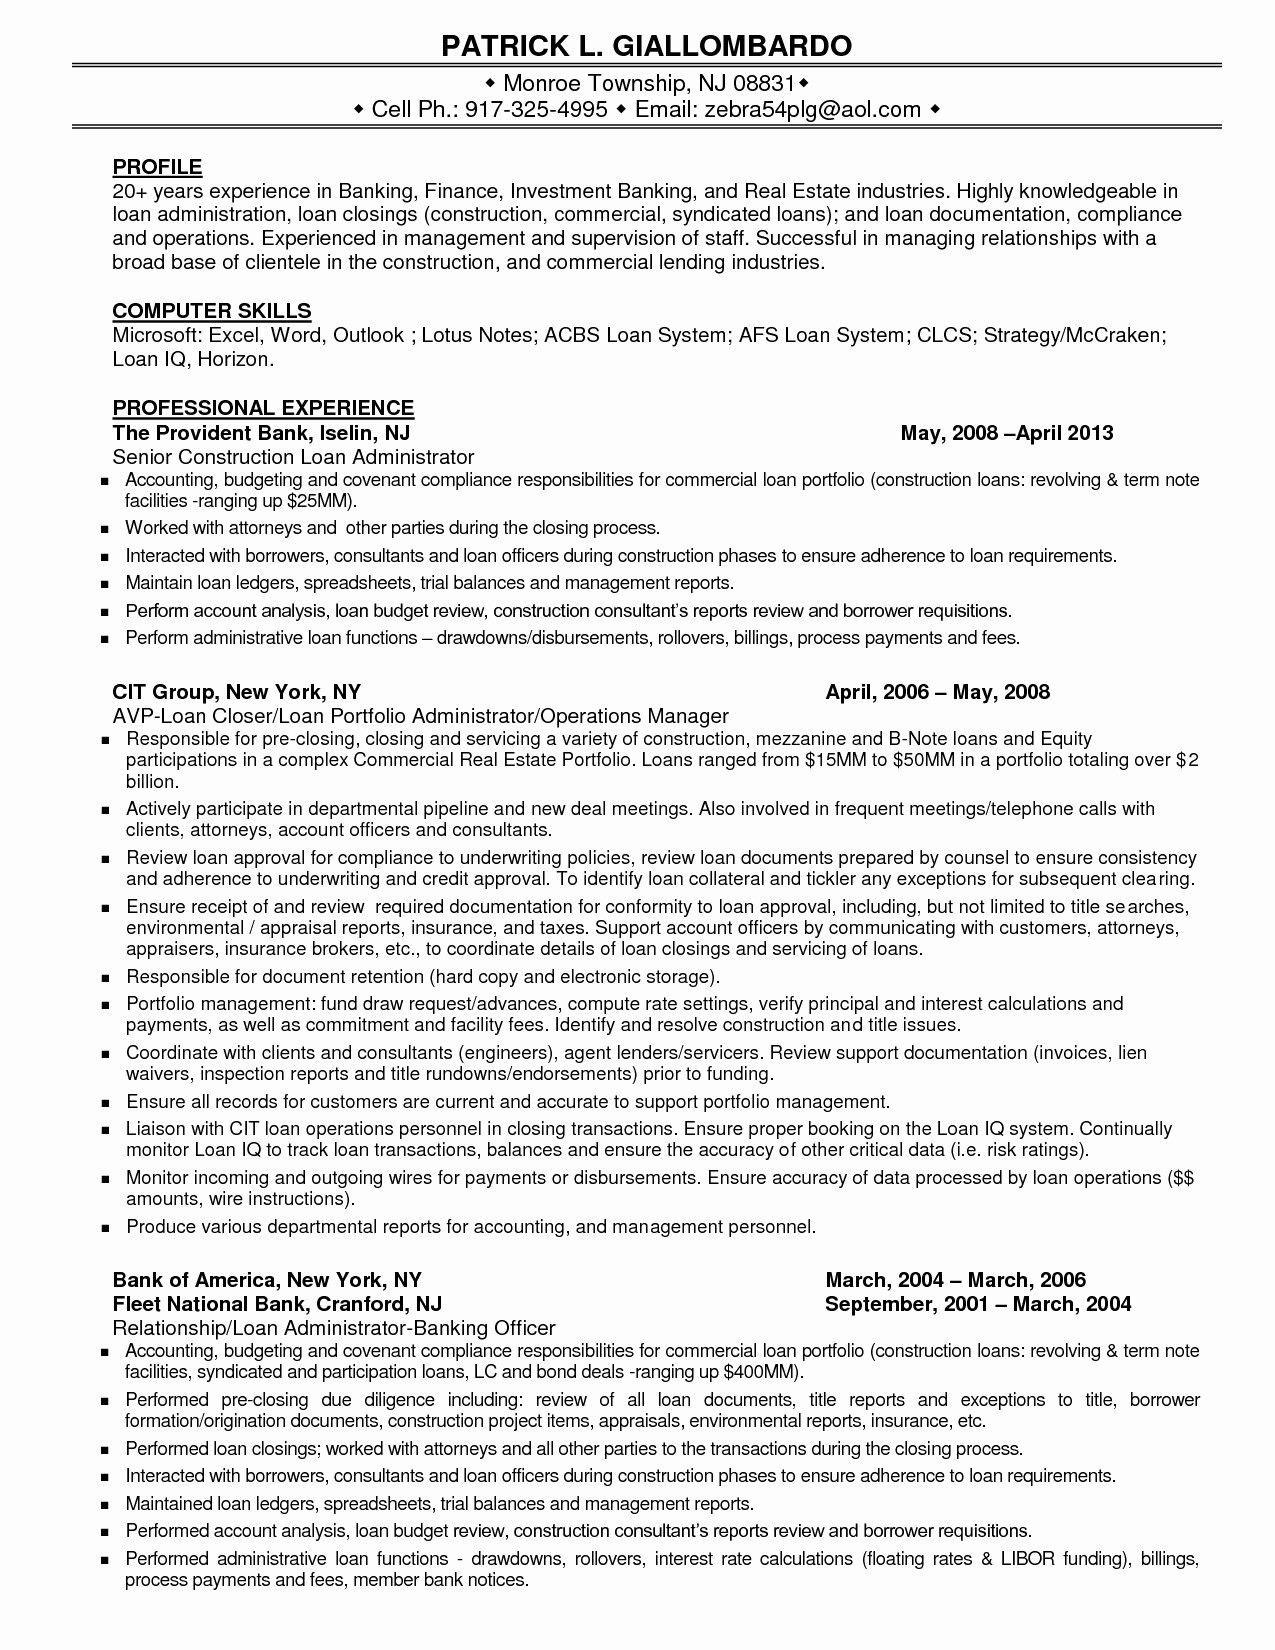 Investment Banking Resume Sample - Investment Banking Resume Review which Usually Ten is Utilized